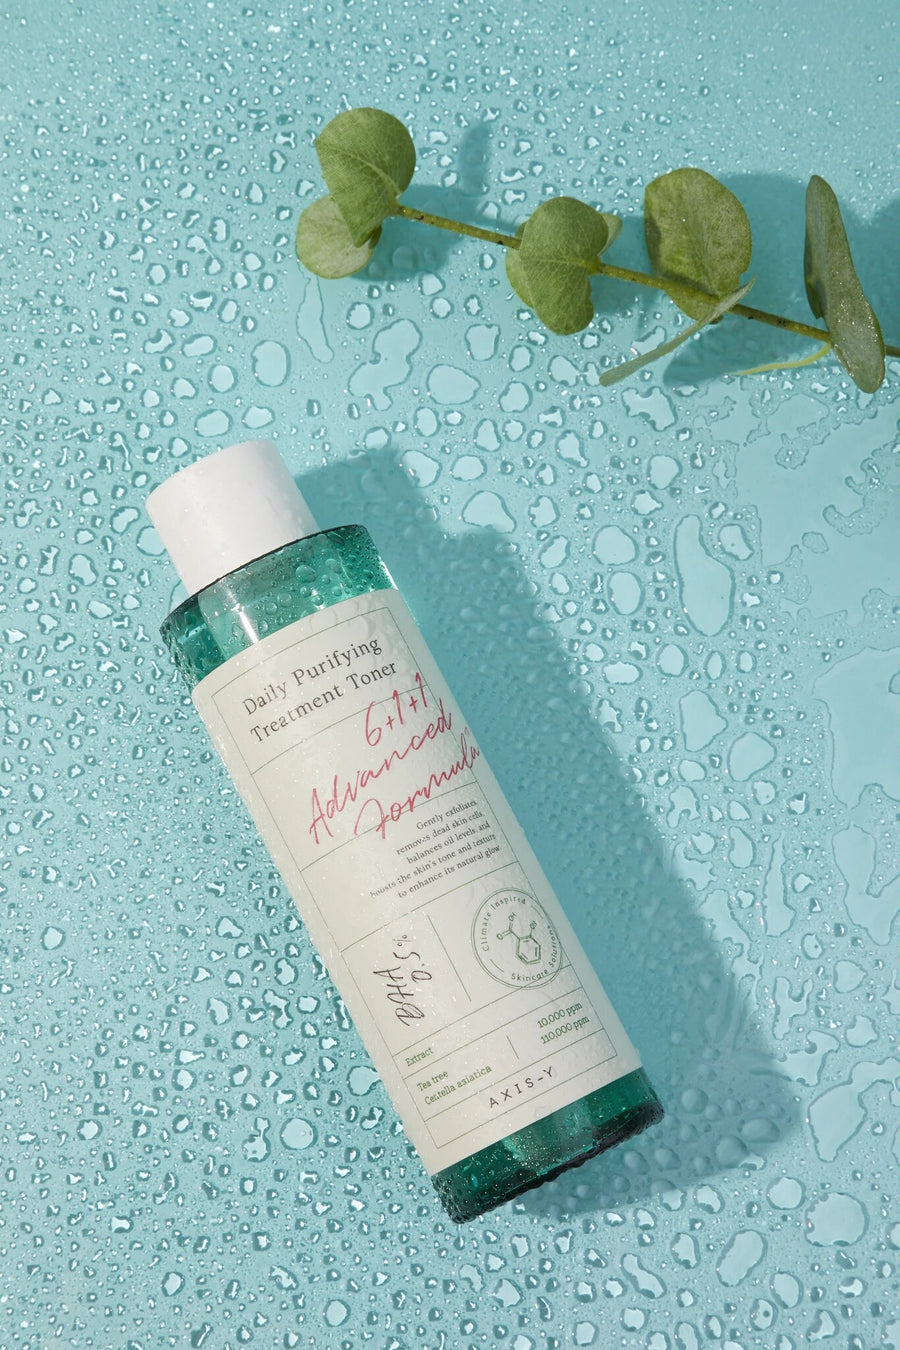 AXIS-Y Daily Purifying Treatment Toner - For oily and acne-prone skin - Skin Library UK